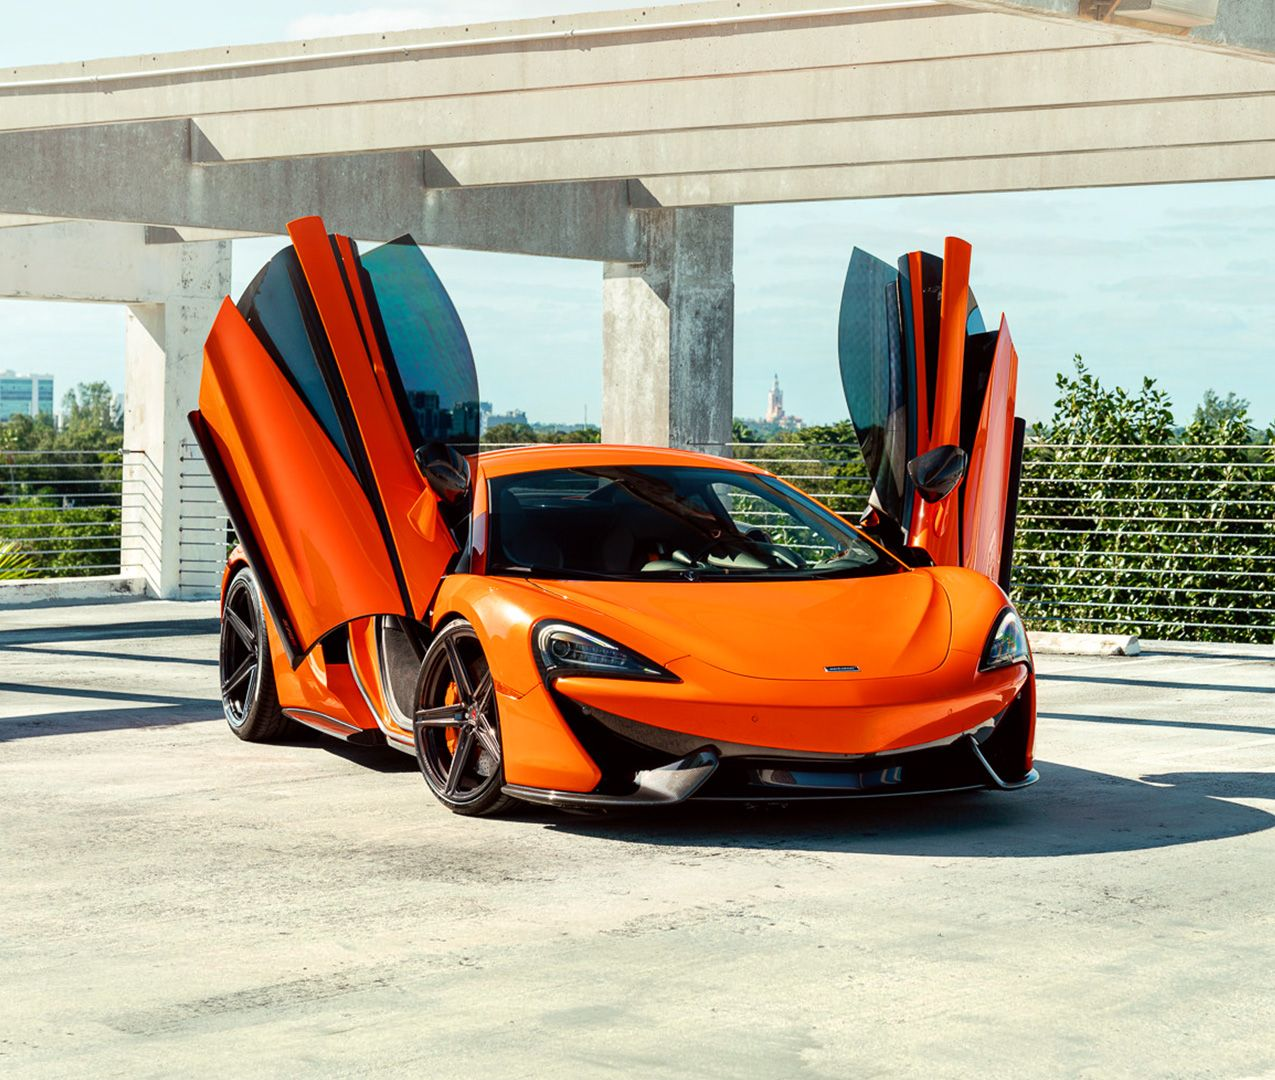 The Only Thing Better Than A Supercar Is A Supercar With The Vertical Doors Caridsupercars In 2020 Super Cars Vertical Doors Dream Cars